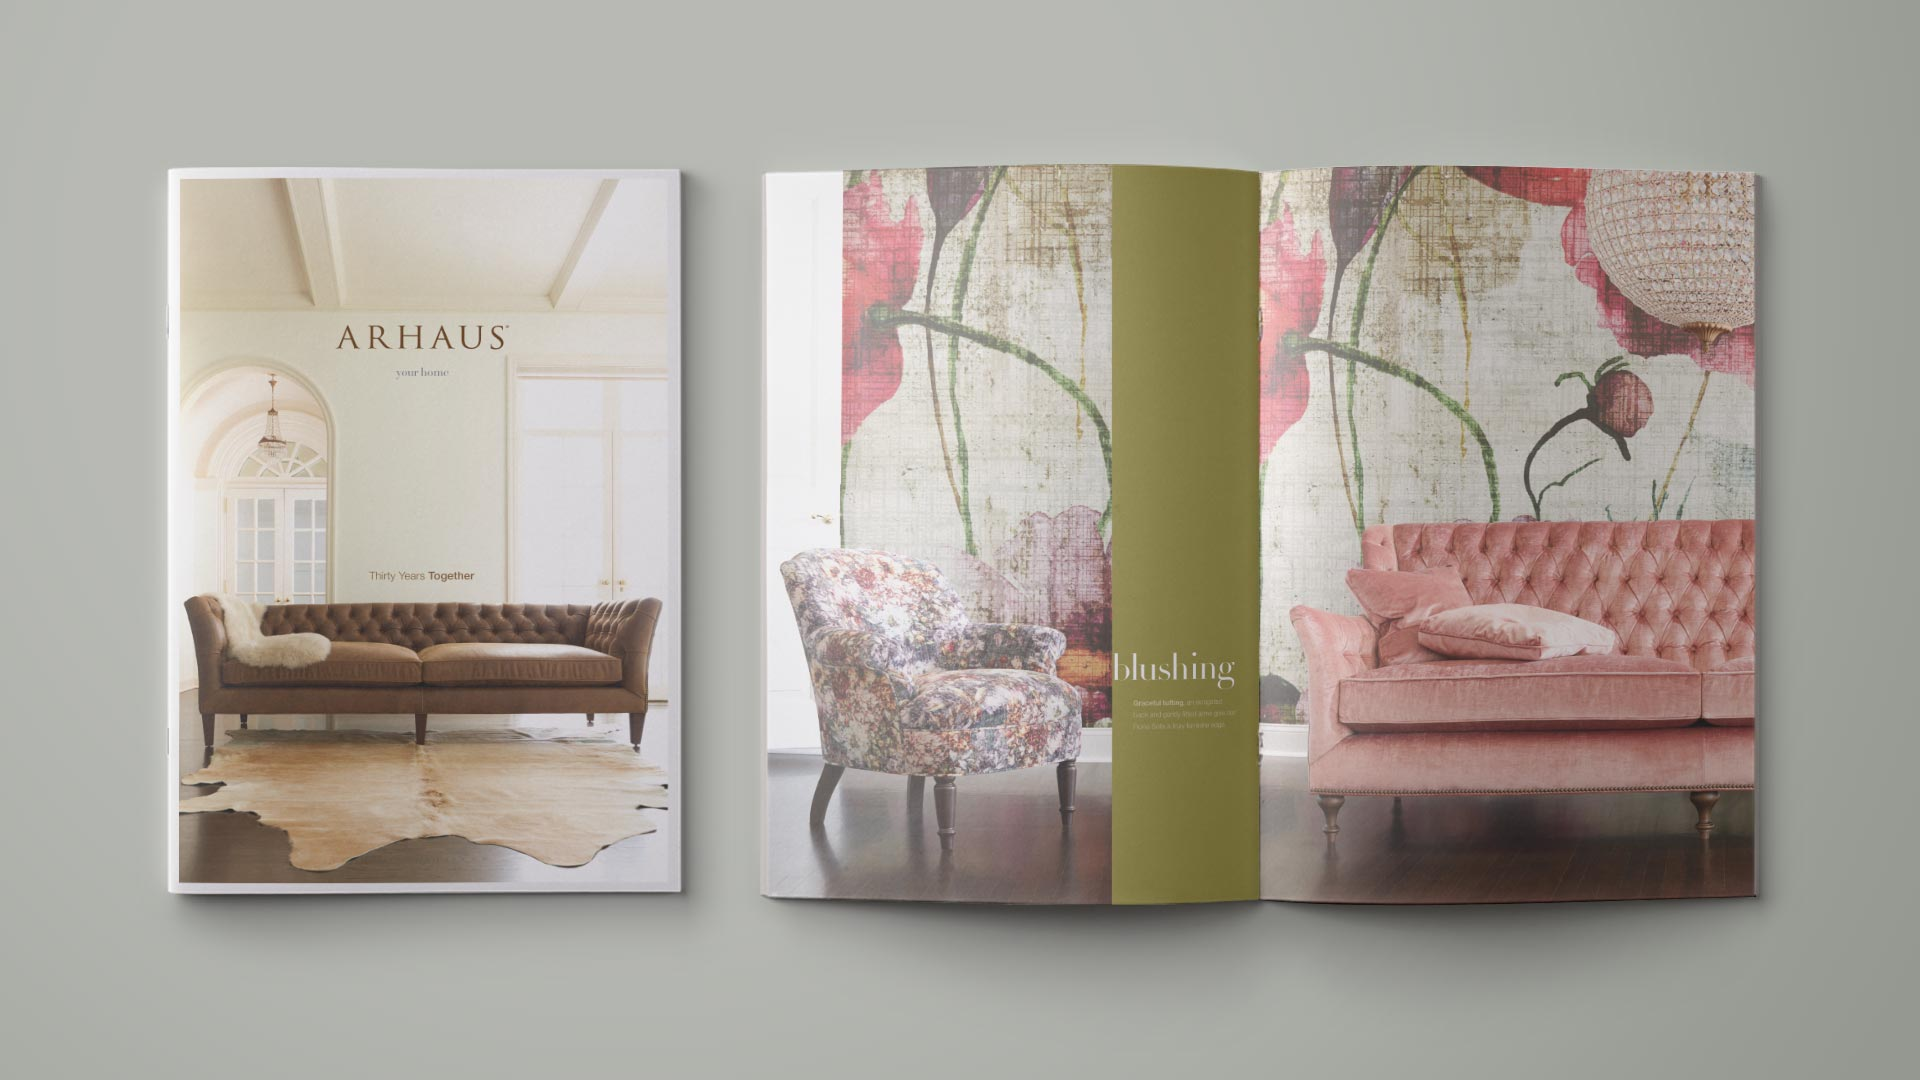 Arhaus Catalog Cover and Interior Spread